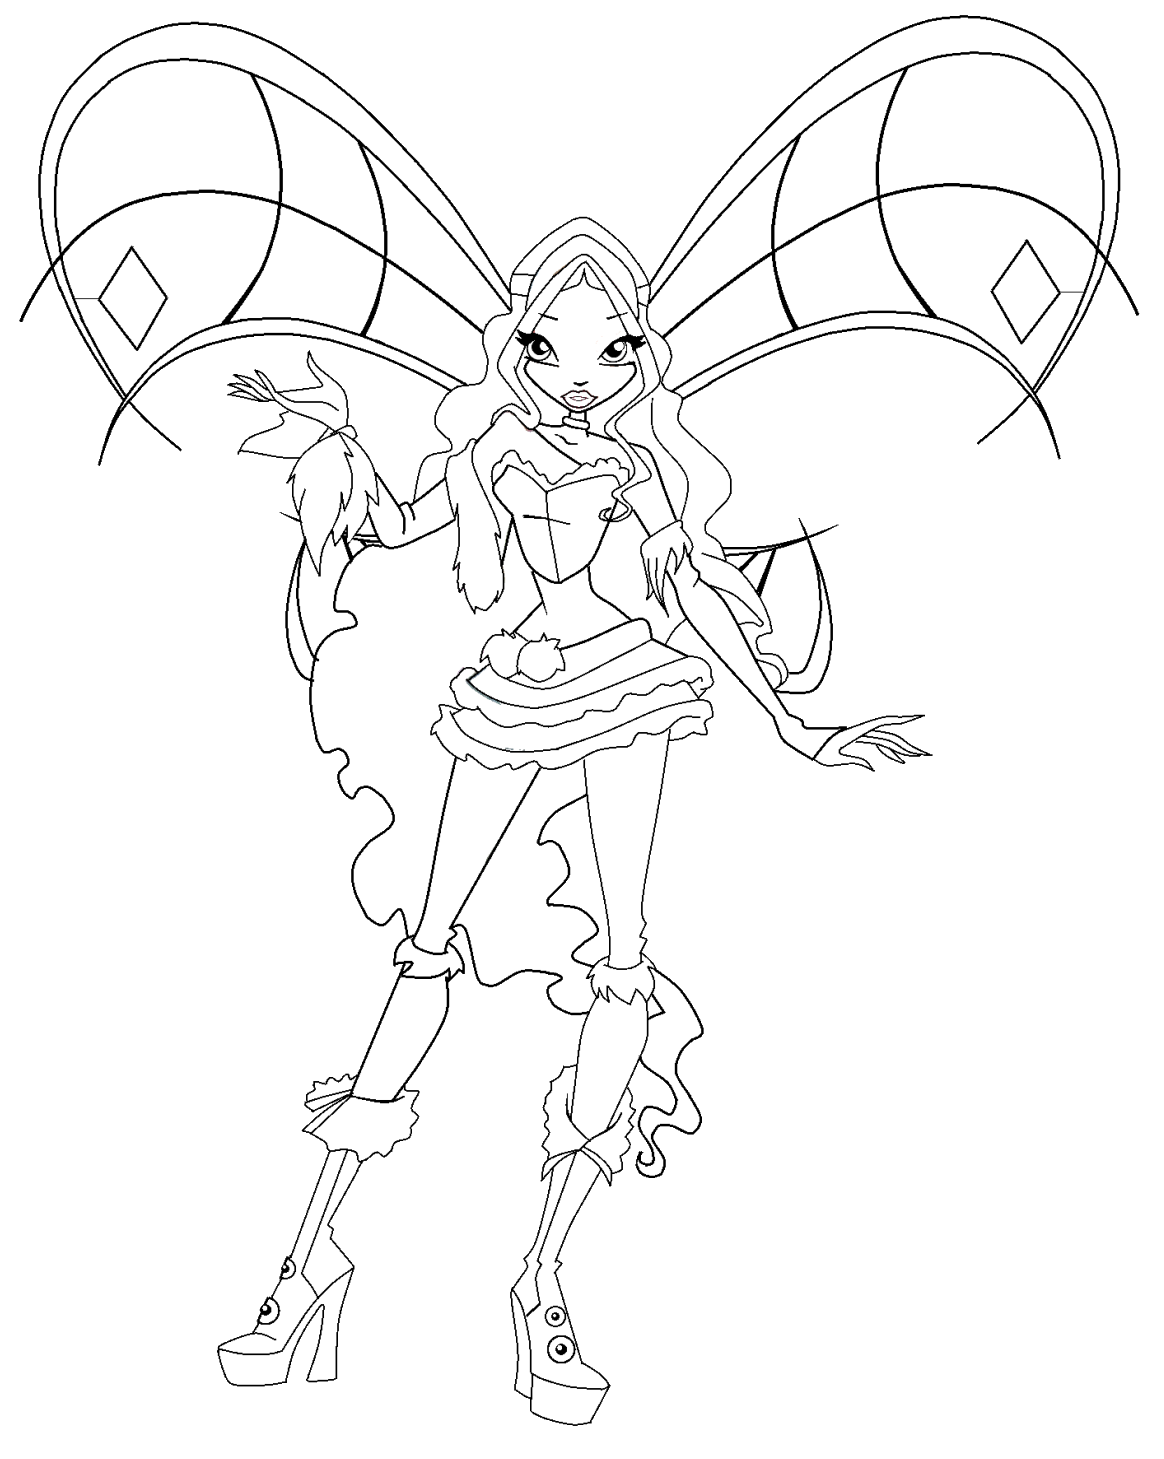 Winx club musa flyrix coloring pages coloriage -  Winx Club Flora20100124192146 Png On Pinterest Tecna Sophix Colouring Pages Page 2 Coloriage